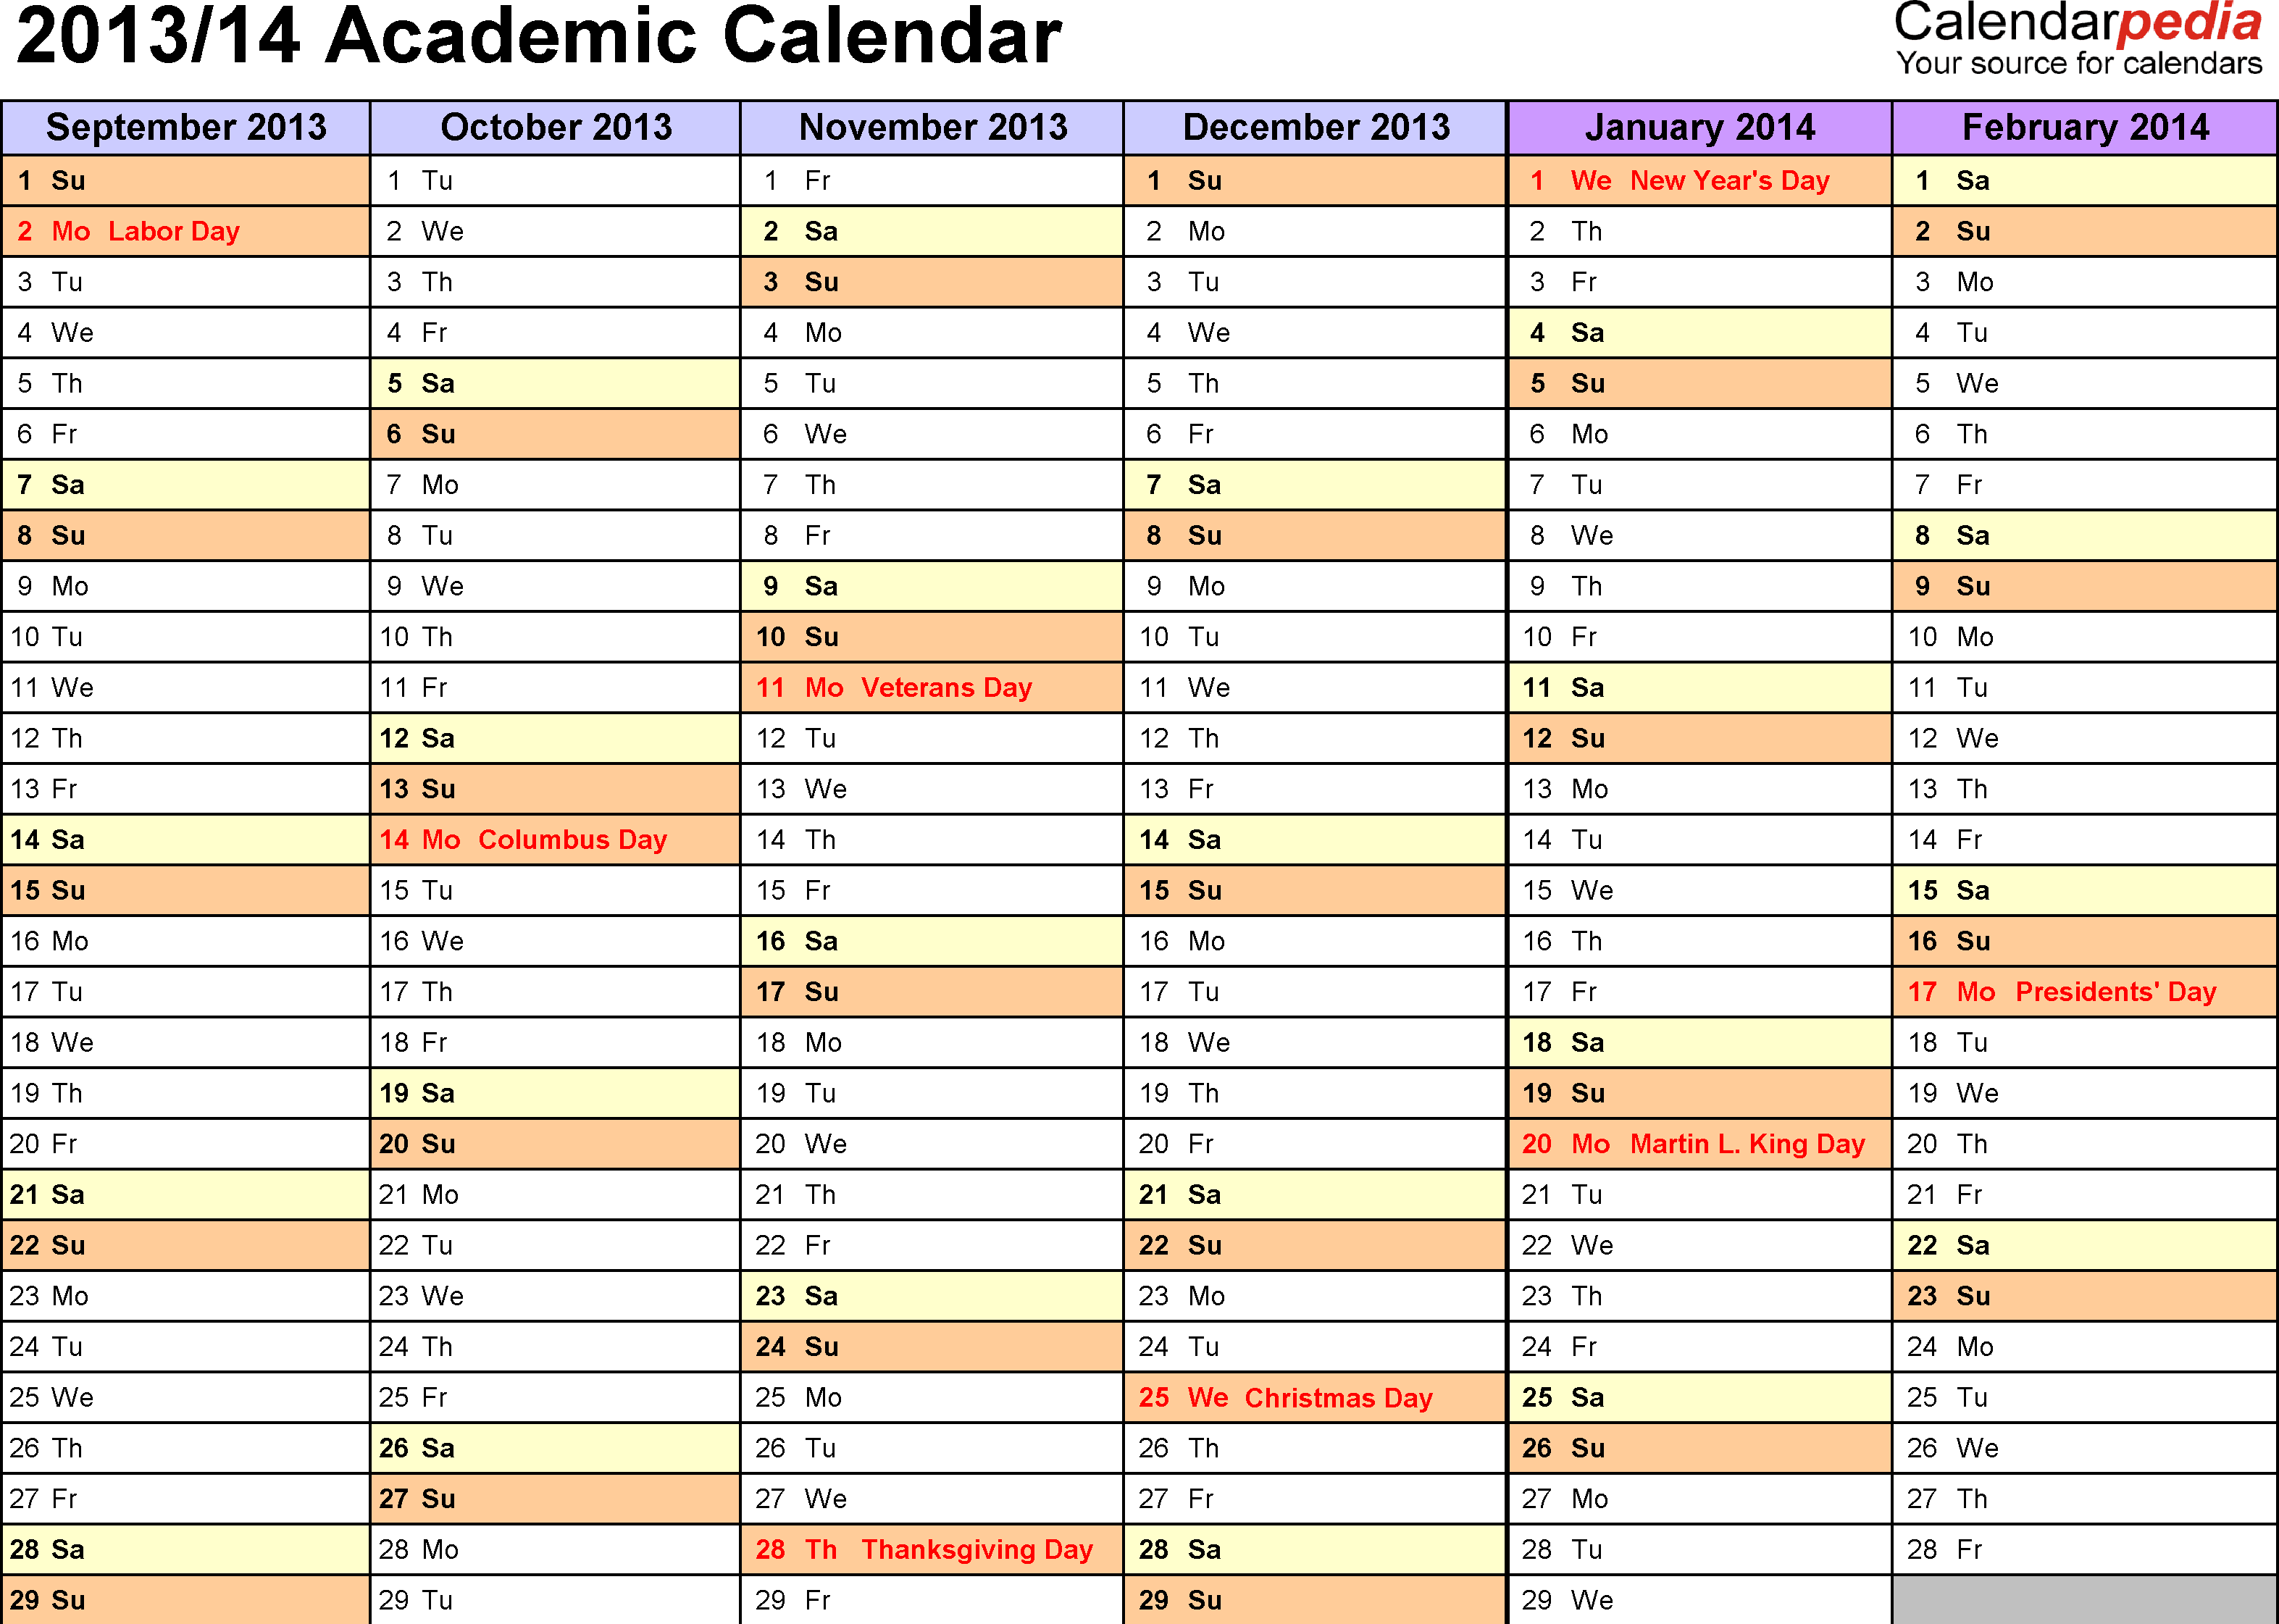 Template 2: Academic Calendar 2013/14 For Word, Landscape Orientation,  Months Horizontally